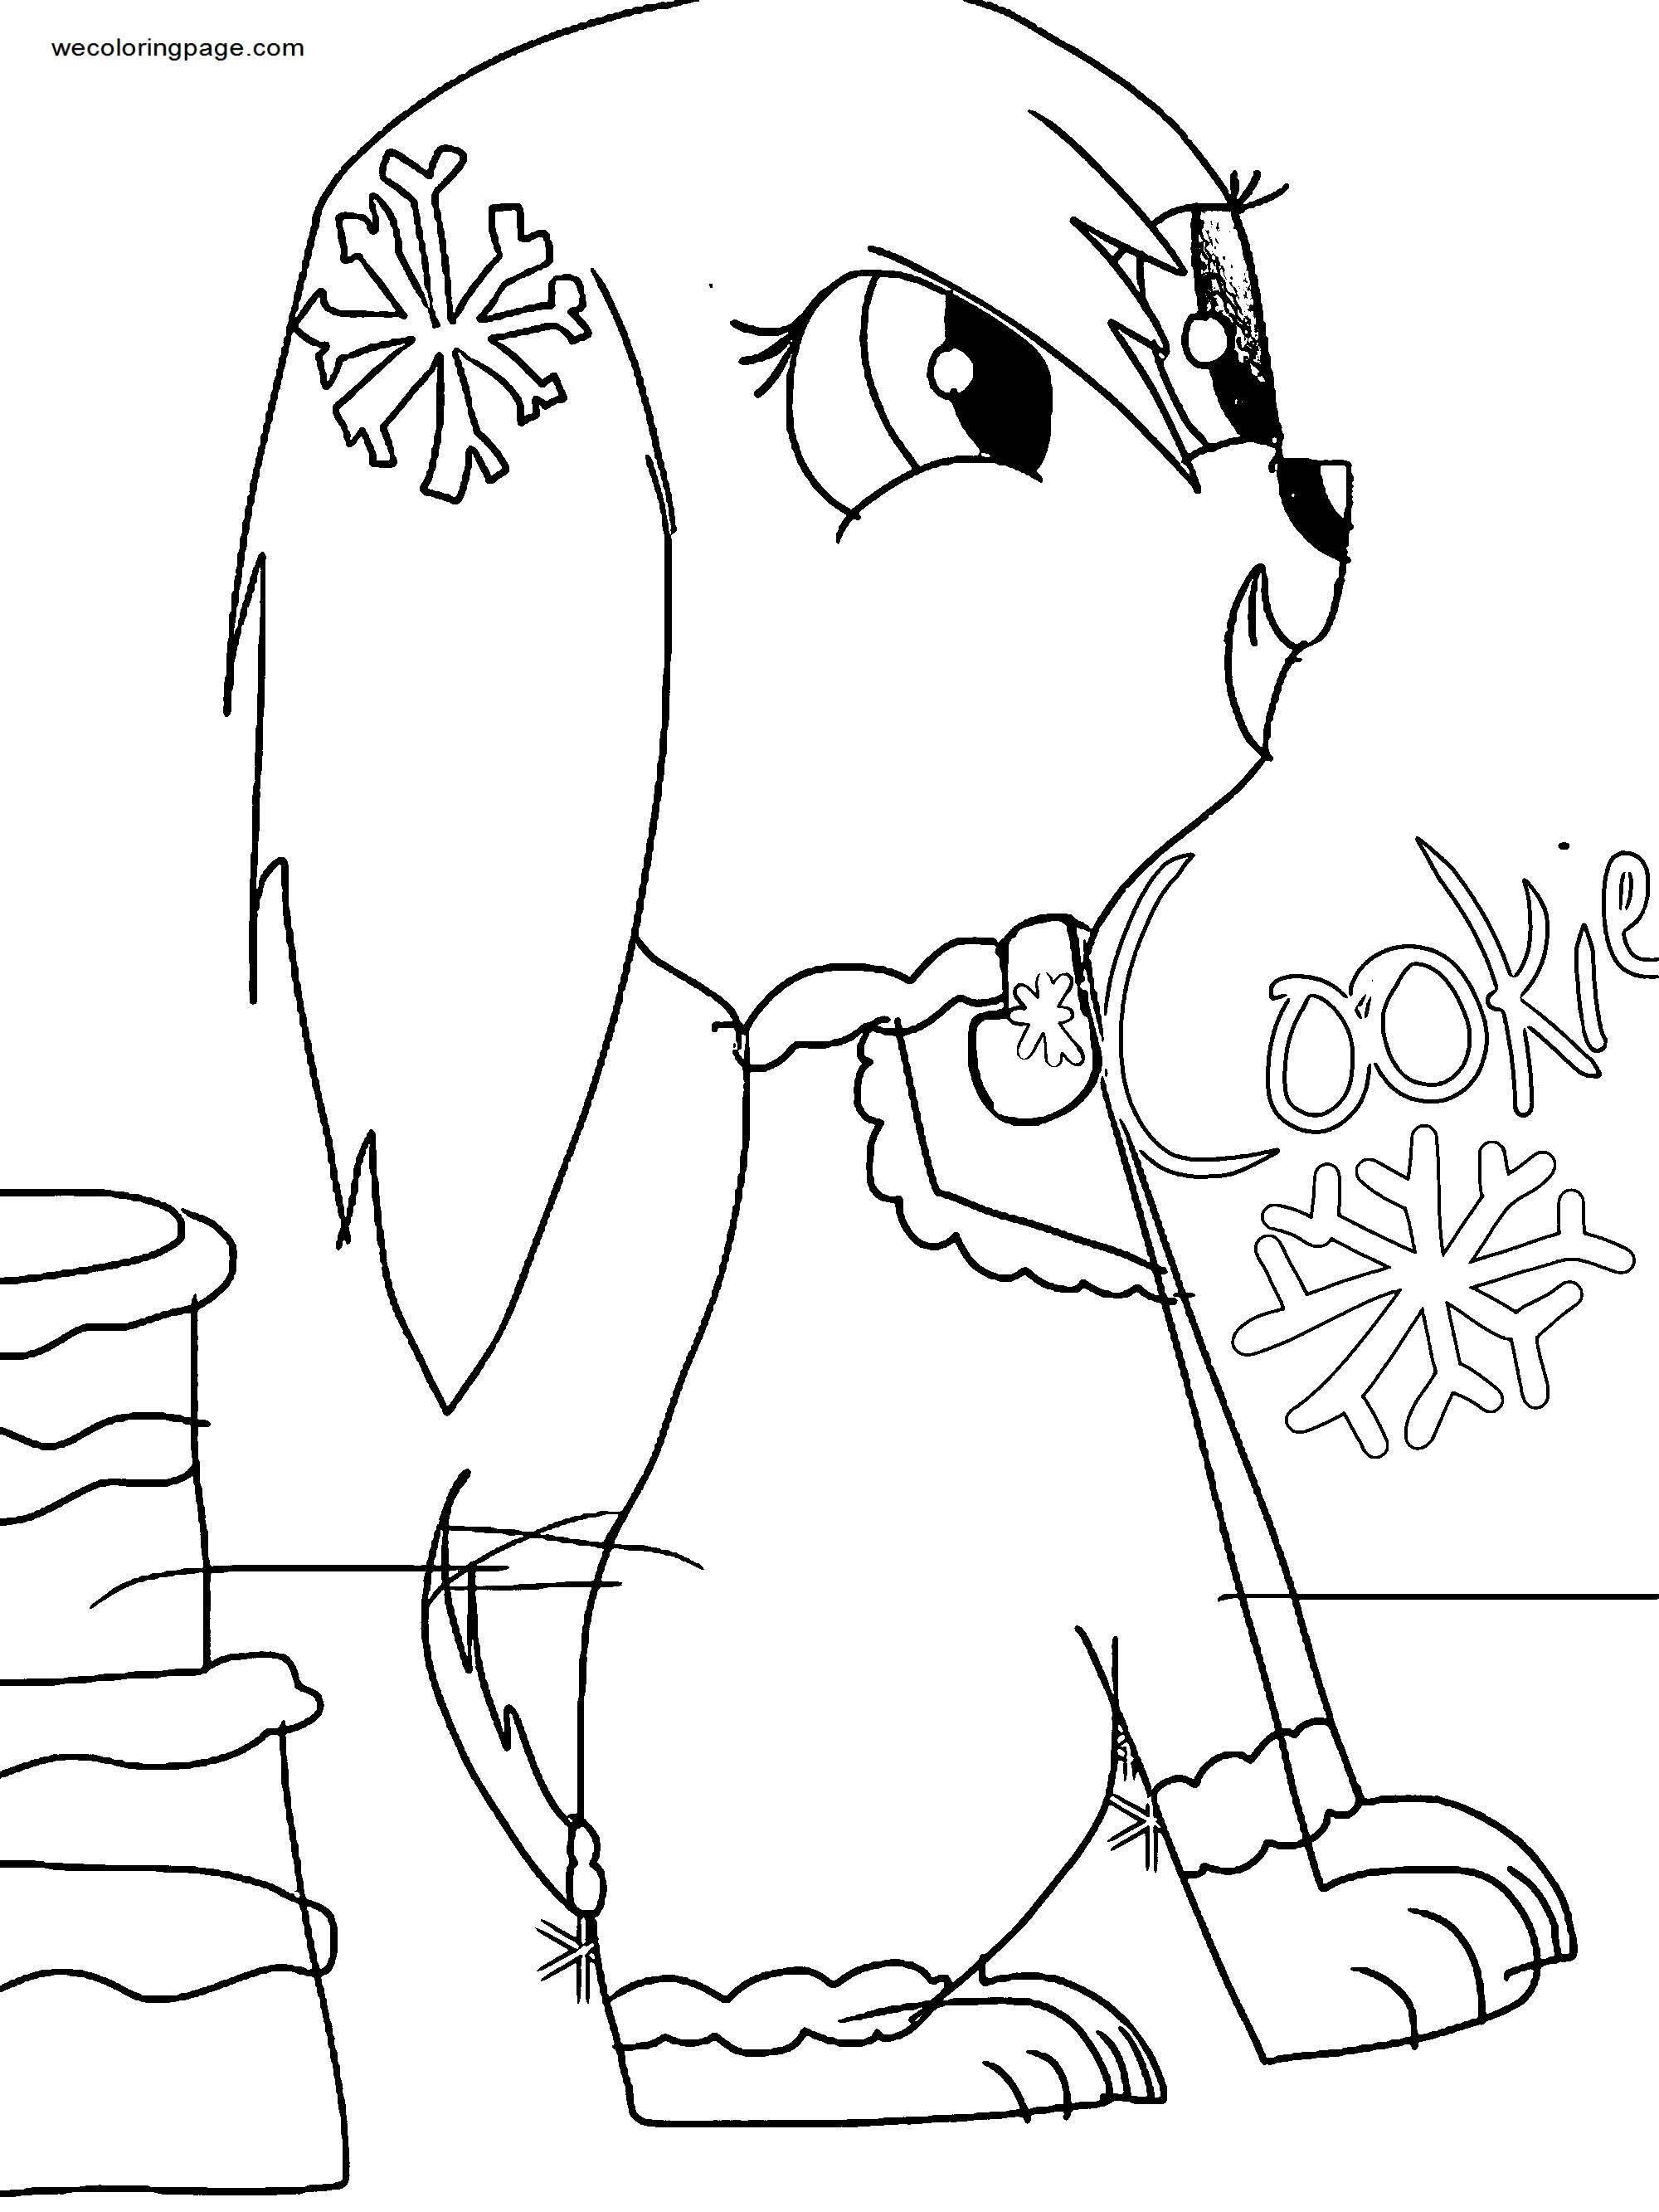 Paw Patrol And Kind Of South Park Oc Cookie Clarice The Tomboy Coloring Page